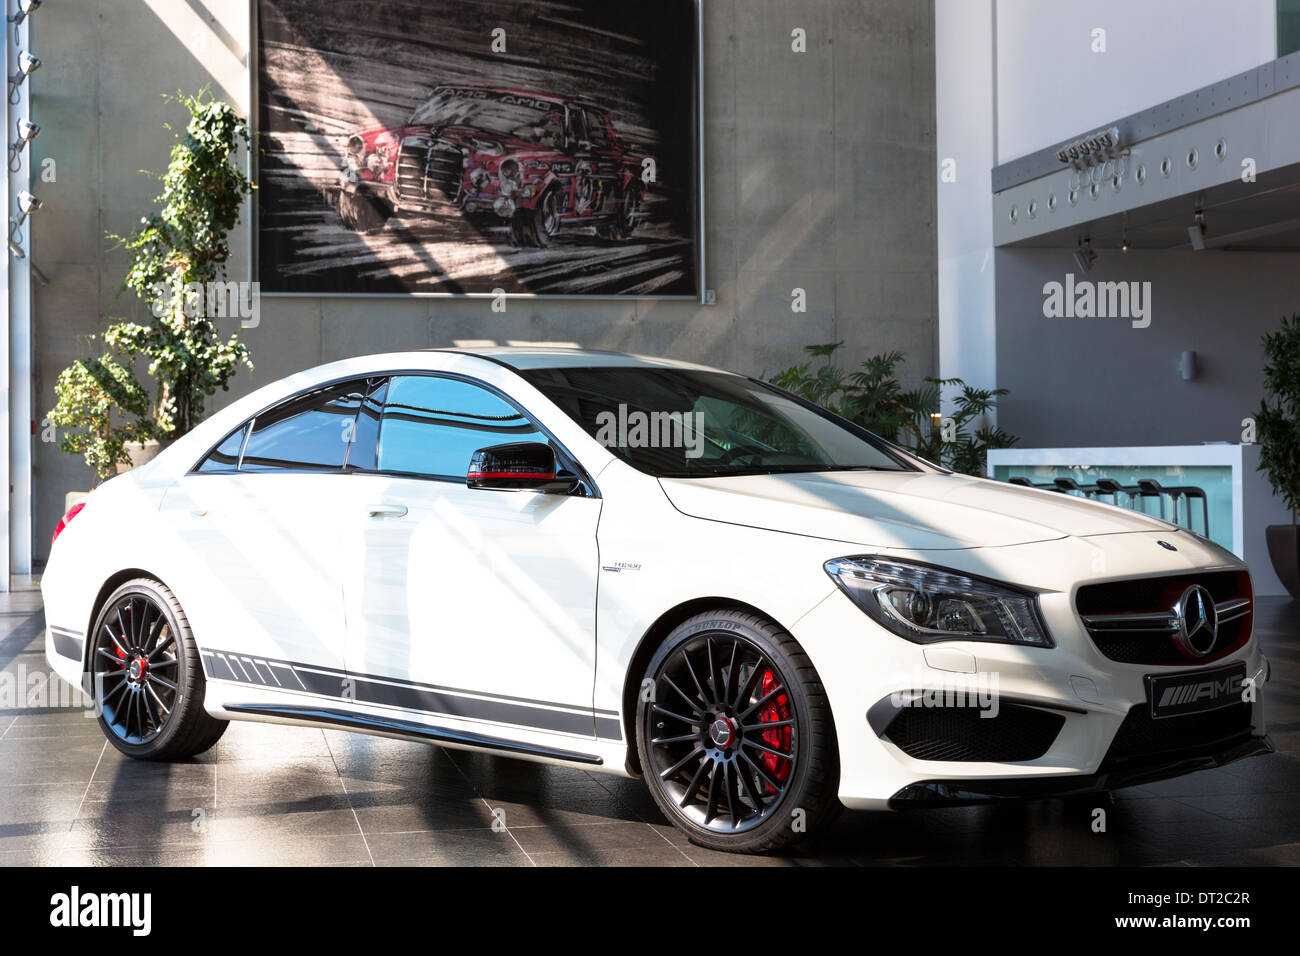 Mercedes-AMG CLA 45 AMG with latest 4 cylinder engine and ceramic brakes in showroom at engine factory, Affalterbach, Germany - Stock Image